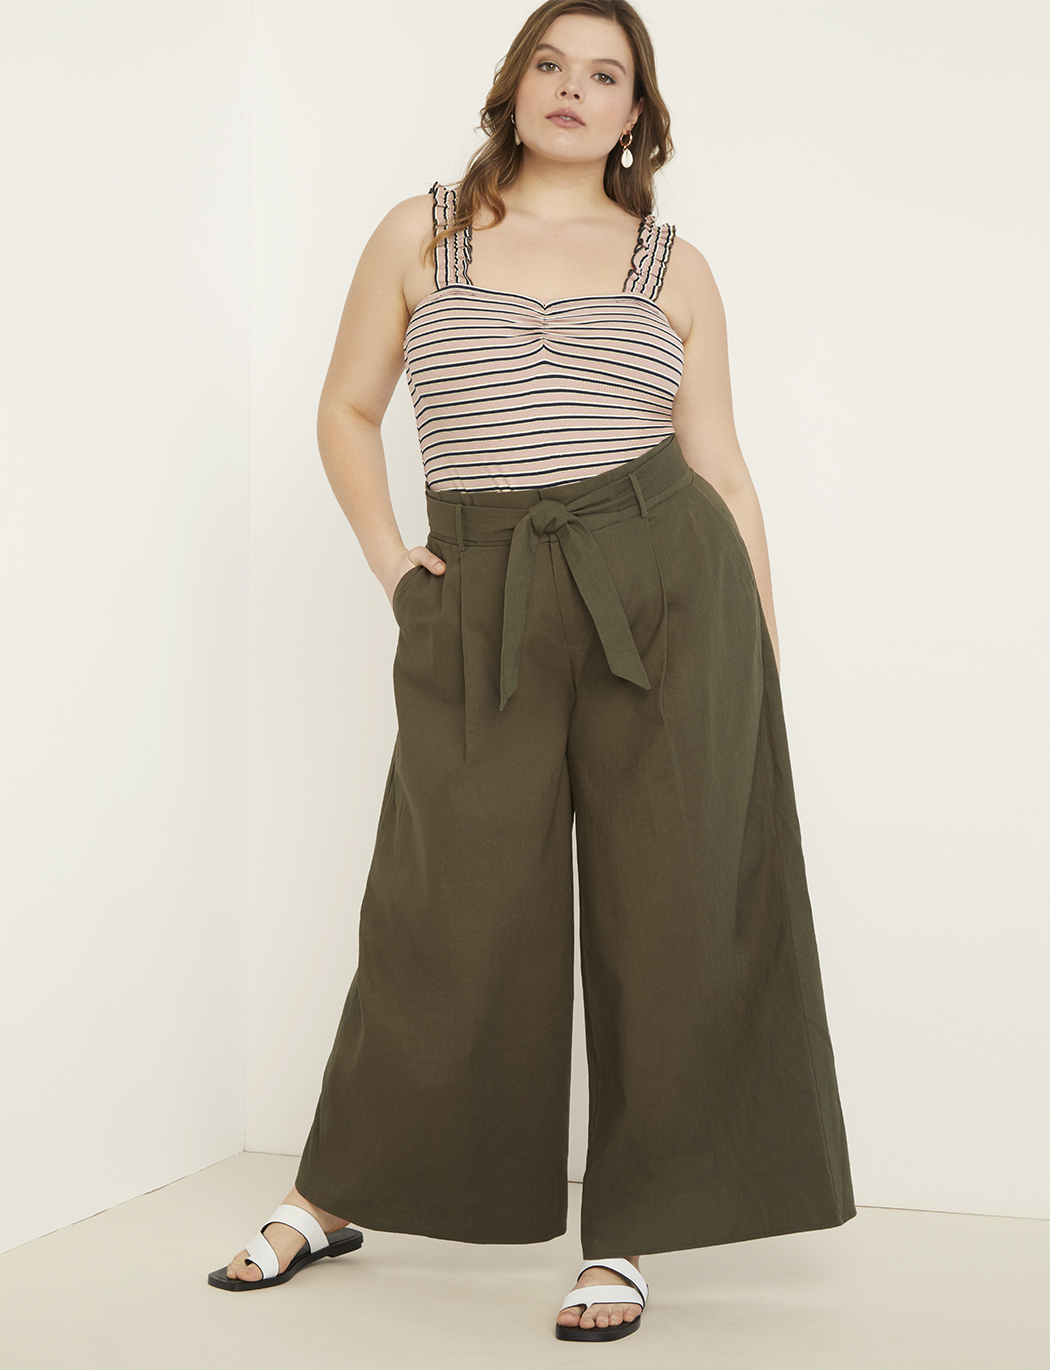 47a096f08be294 Linen Palazzo Pant | Women's Plus Size Pants | ELOQUII